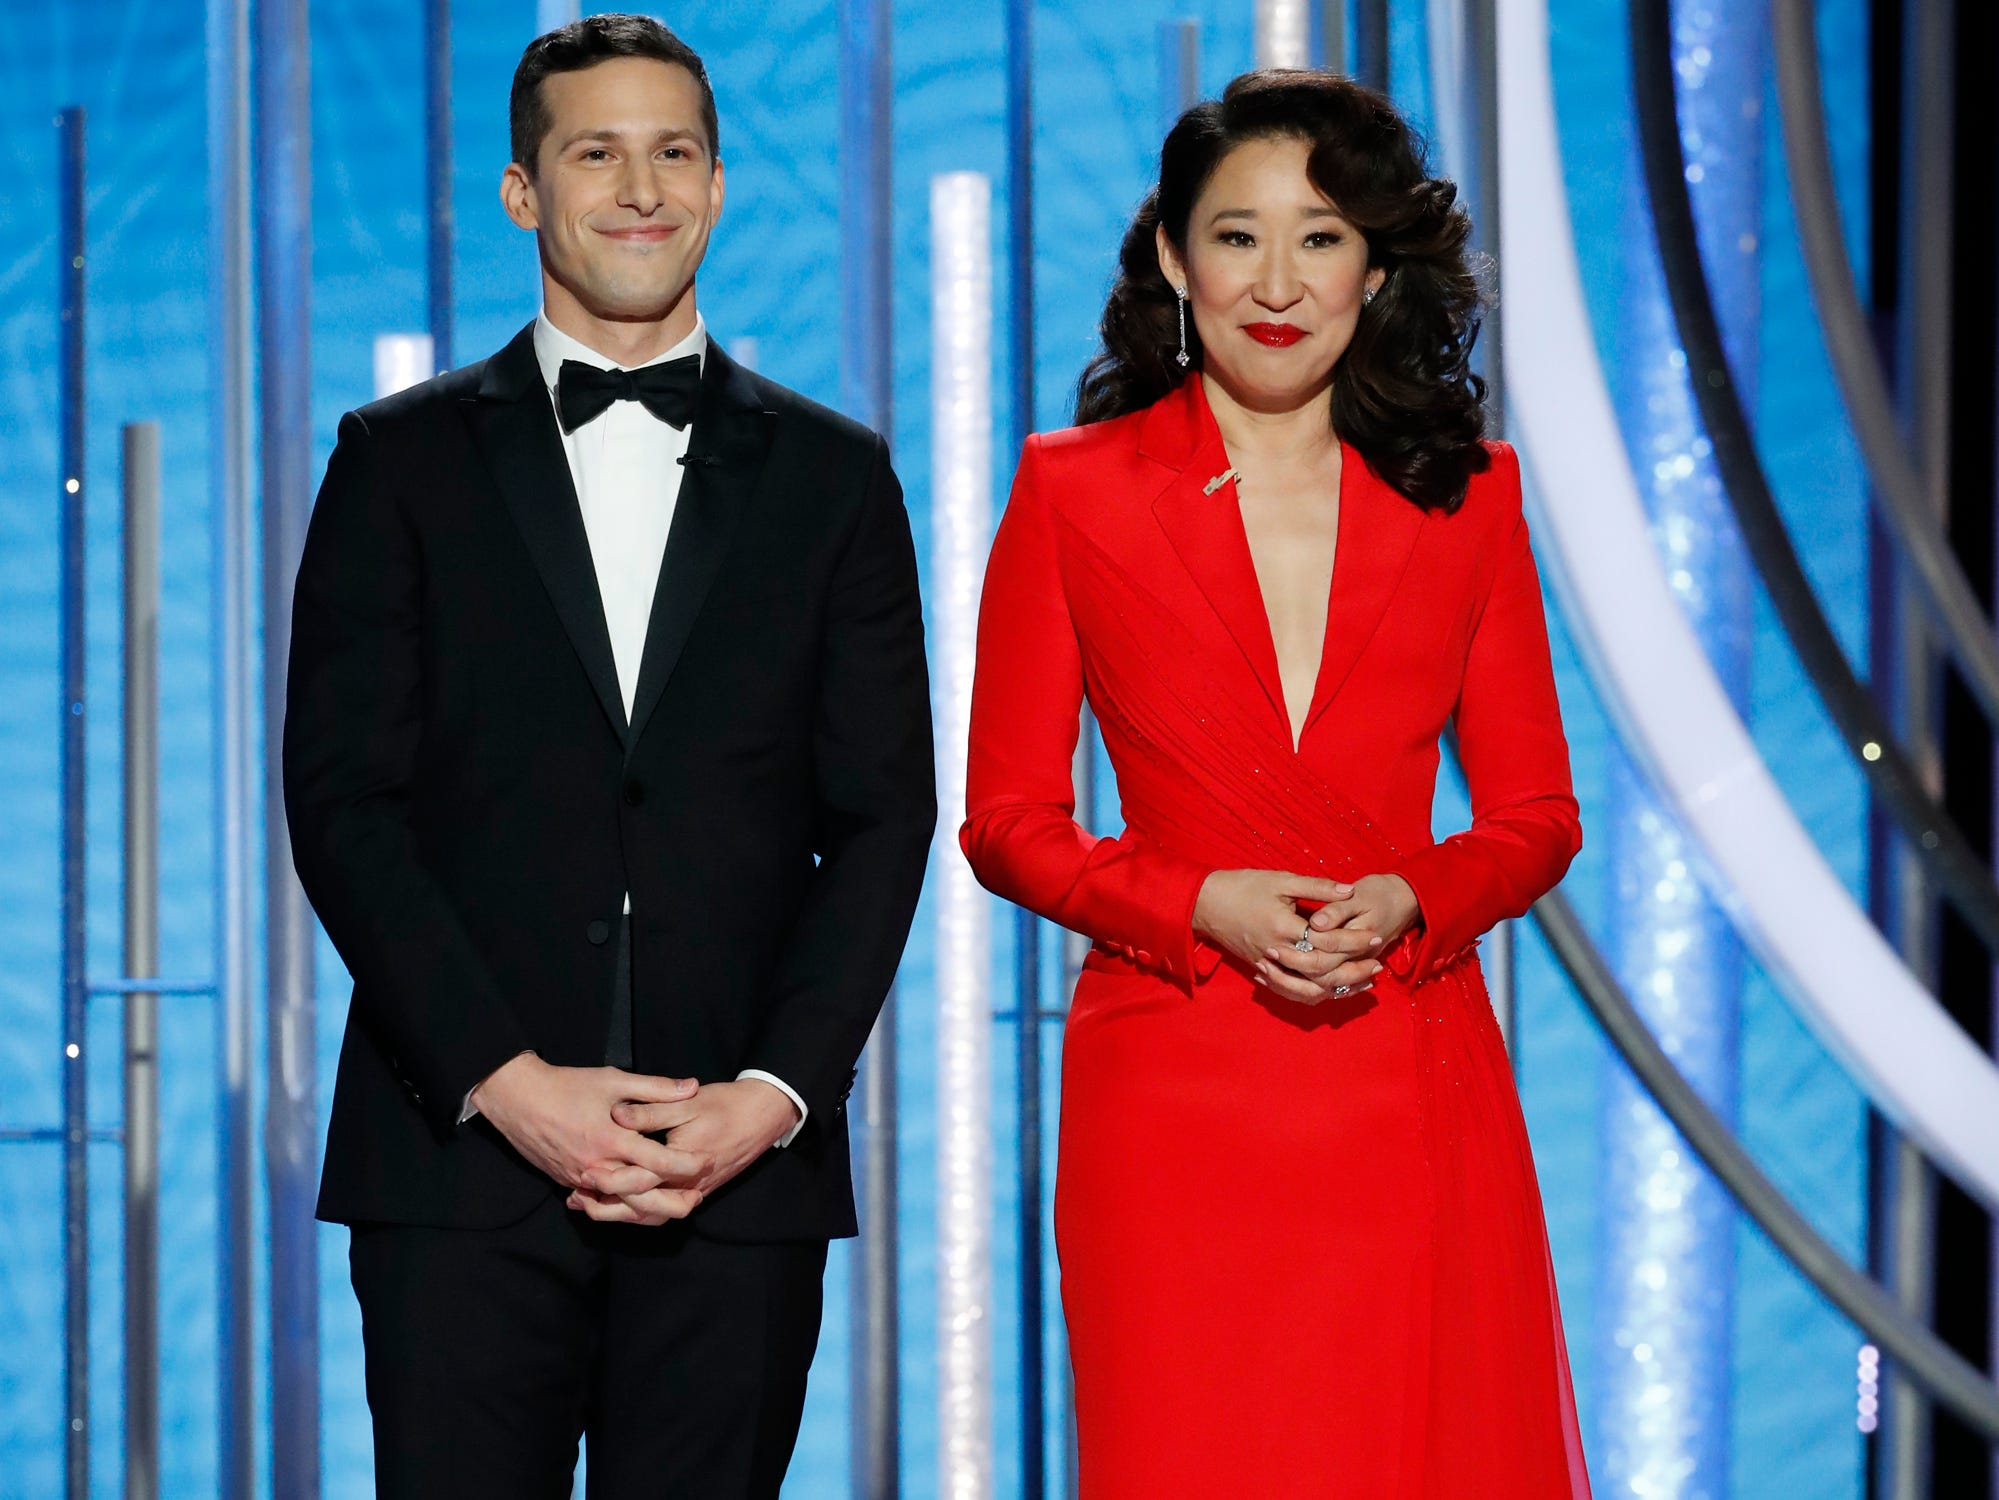 This image released by NBC shows hosts Andy Samberg, left, and Sandra Oh at the 76th Annual Golden Globe Awards.